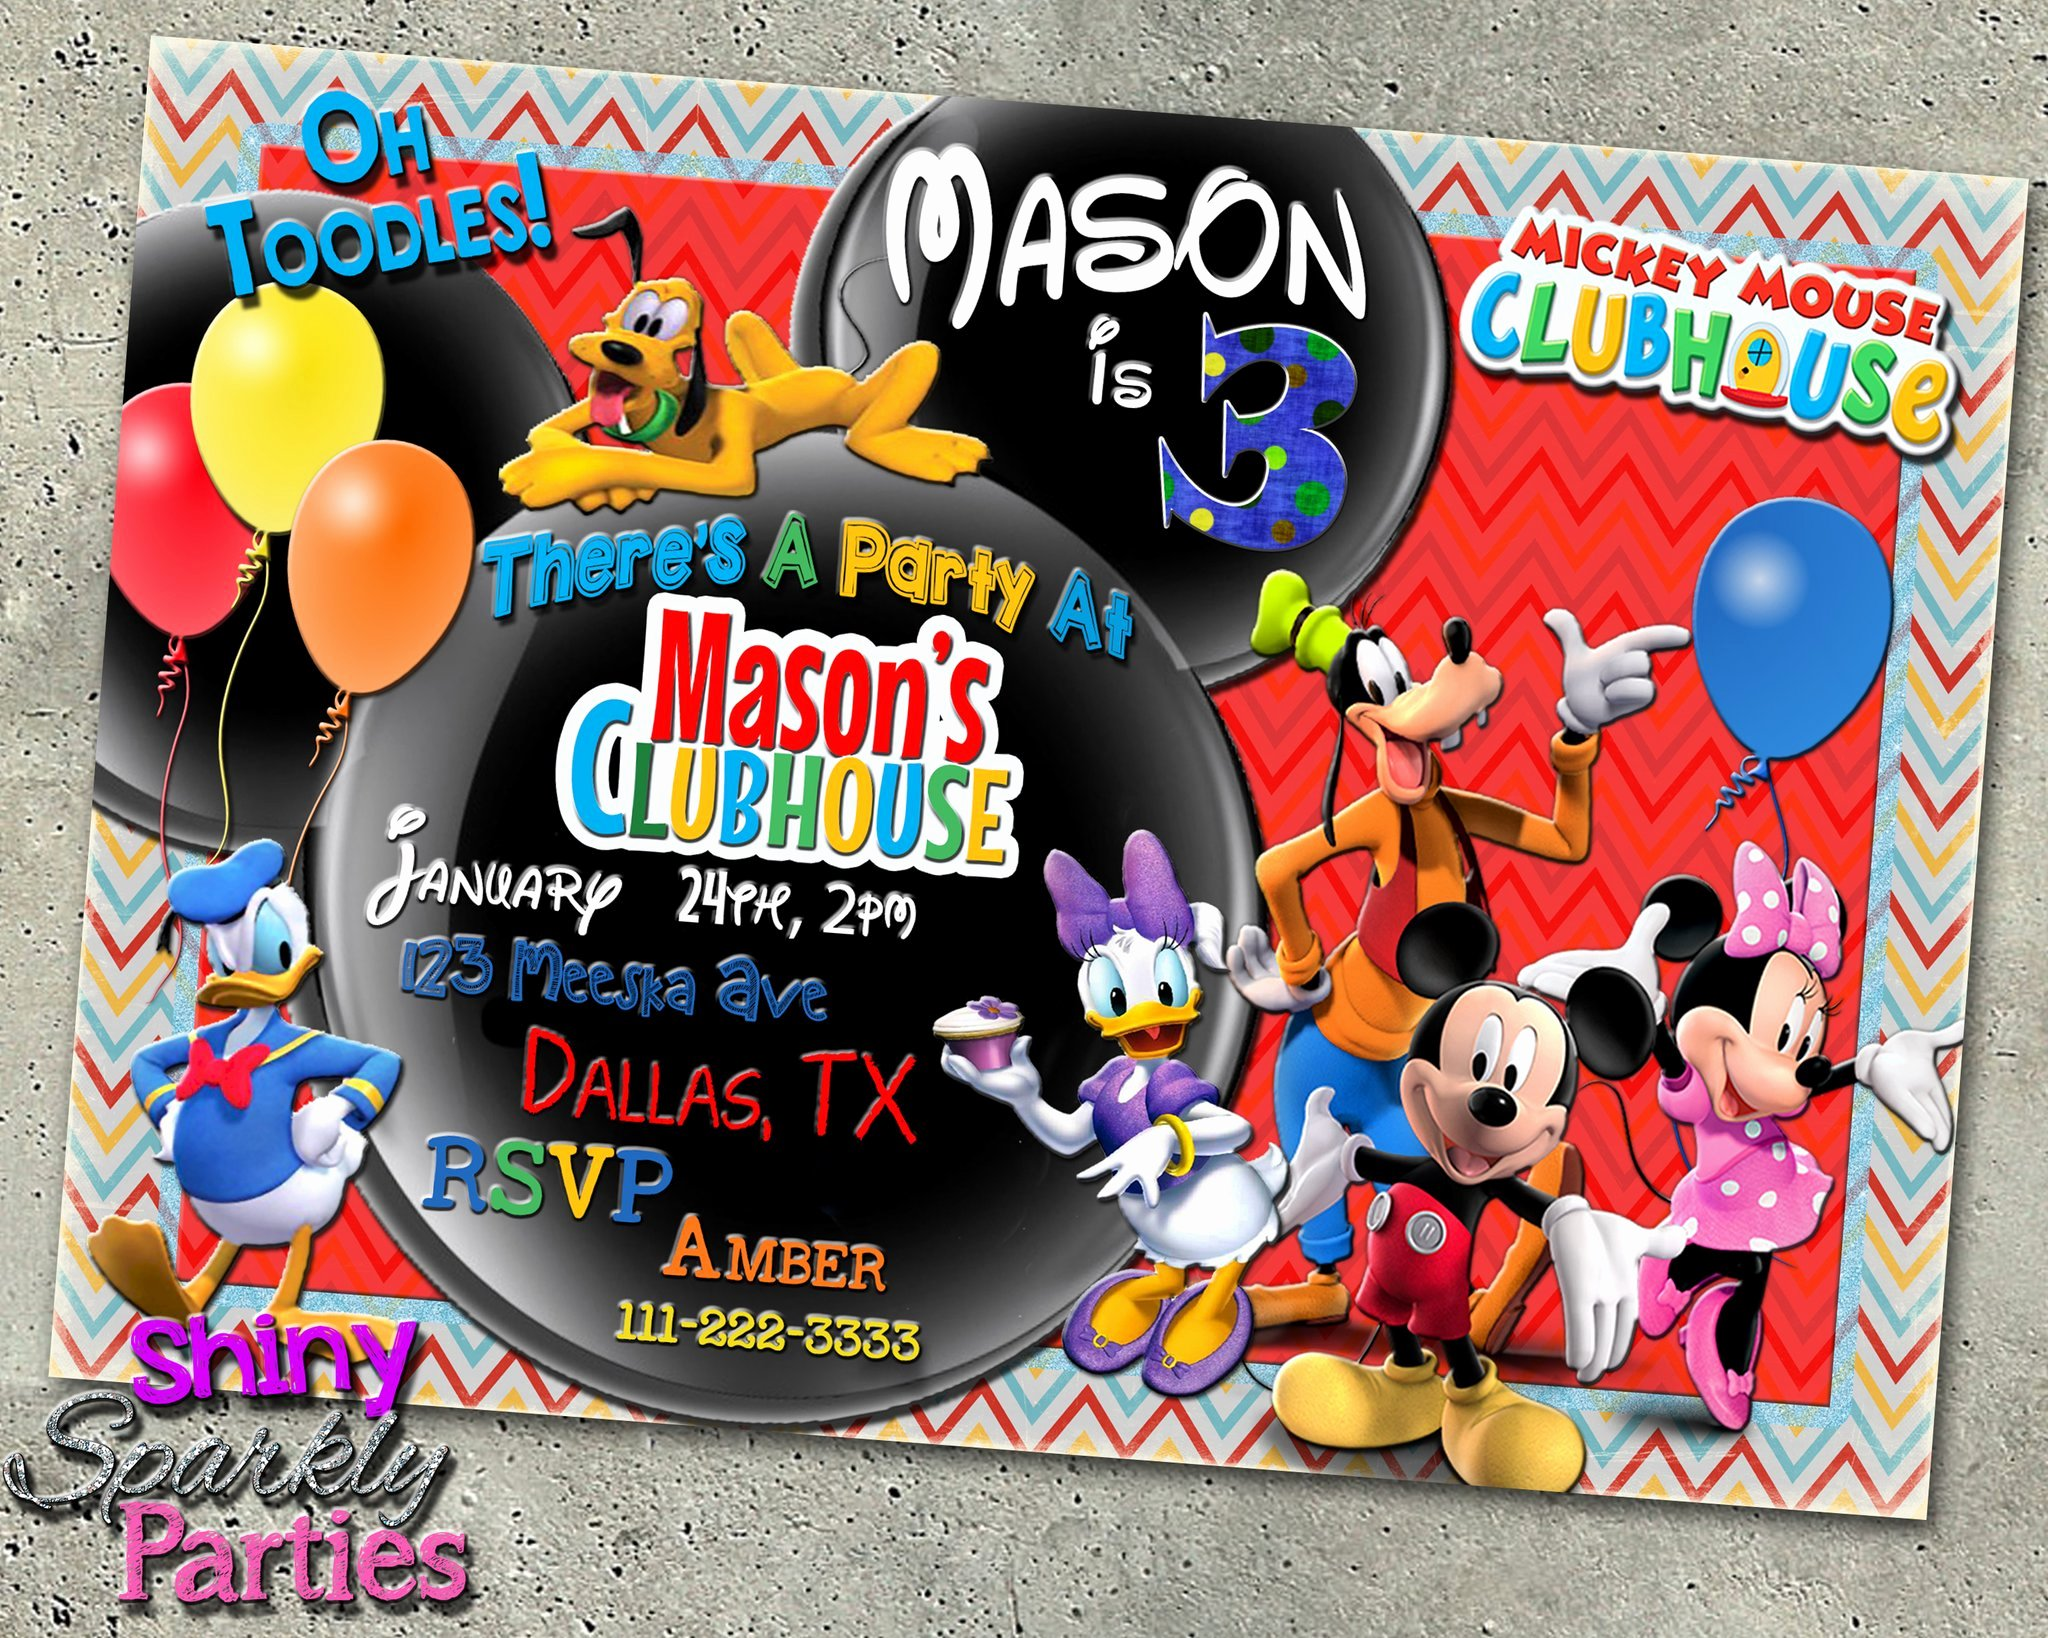 Free Mickey Mouse Clubhouse Invitations Beautiful Mickey Mouse Clubhouse Birthday Invitation forever Fab